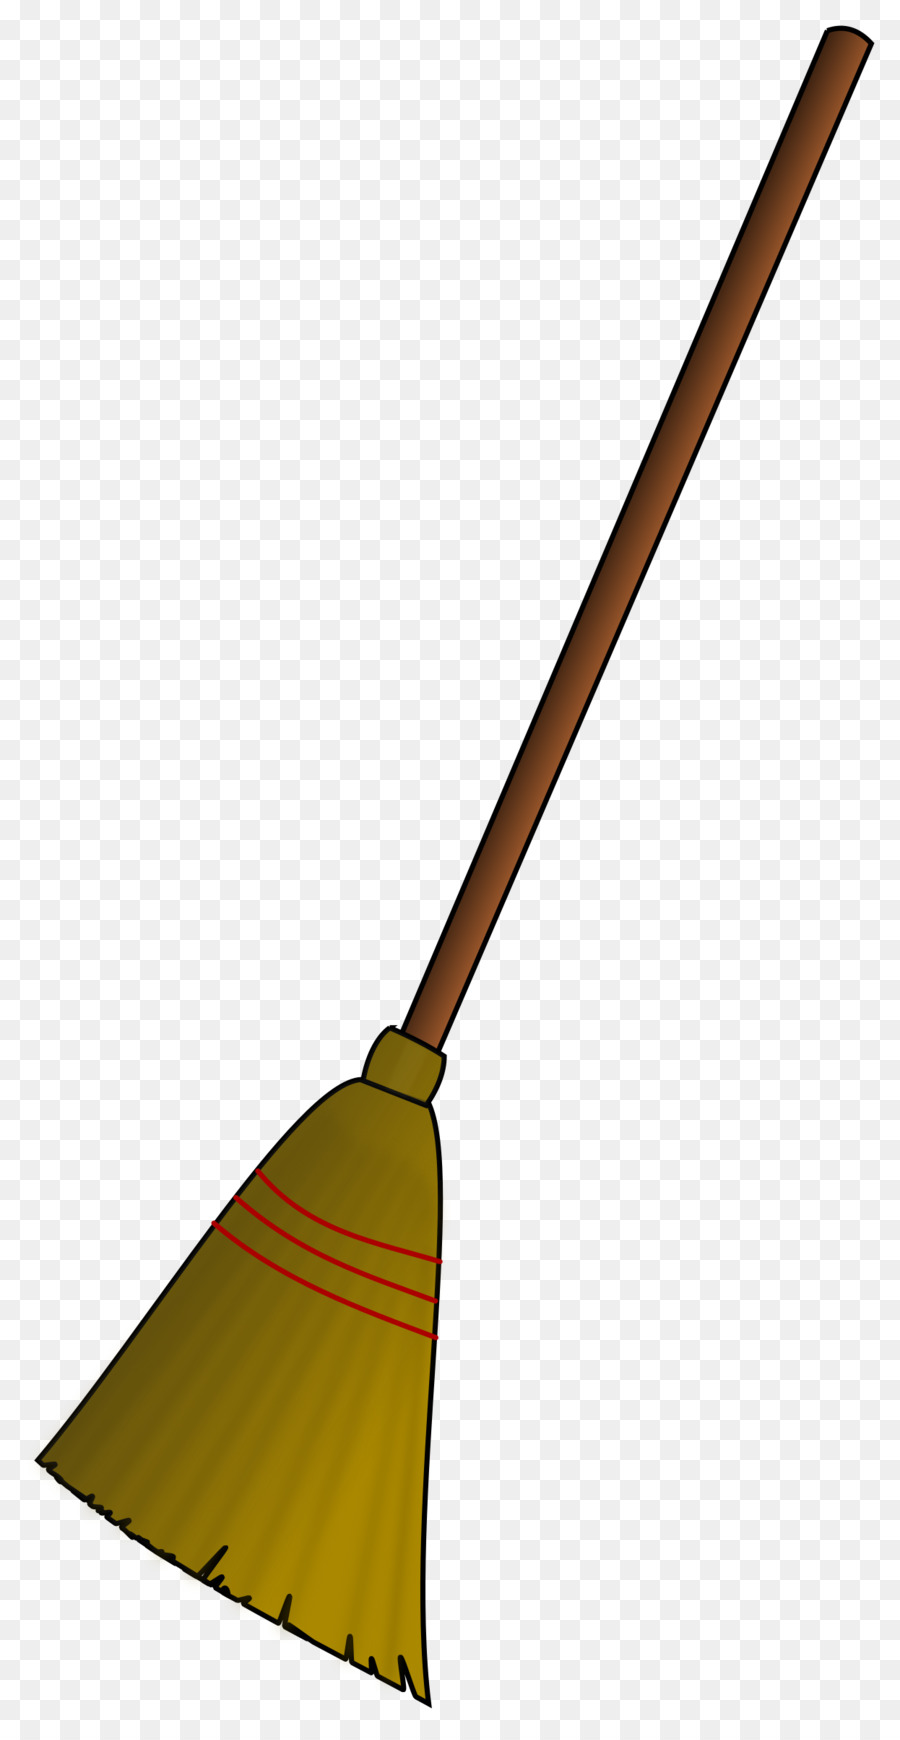 Broom clipart cleaning, Broom cleaning Transparent FREE for.